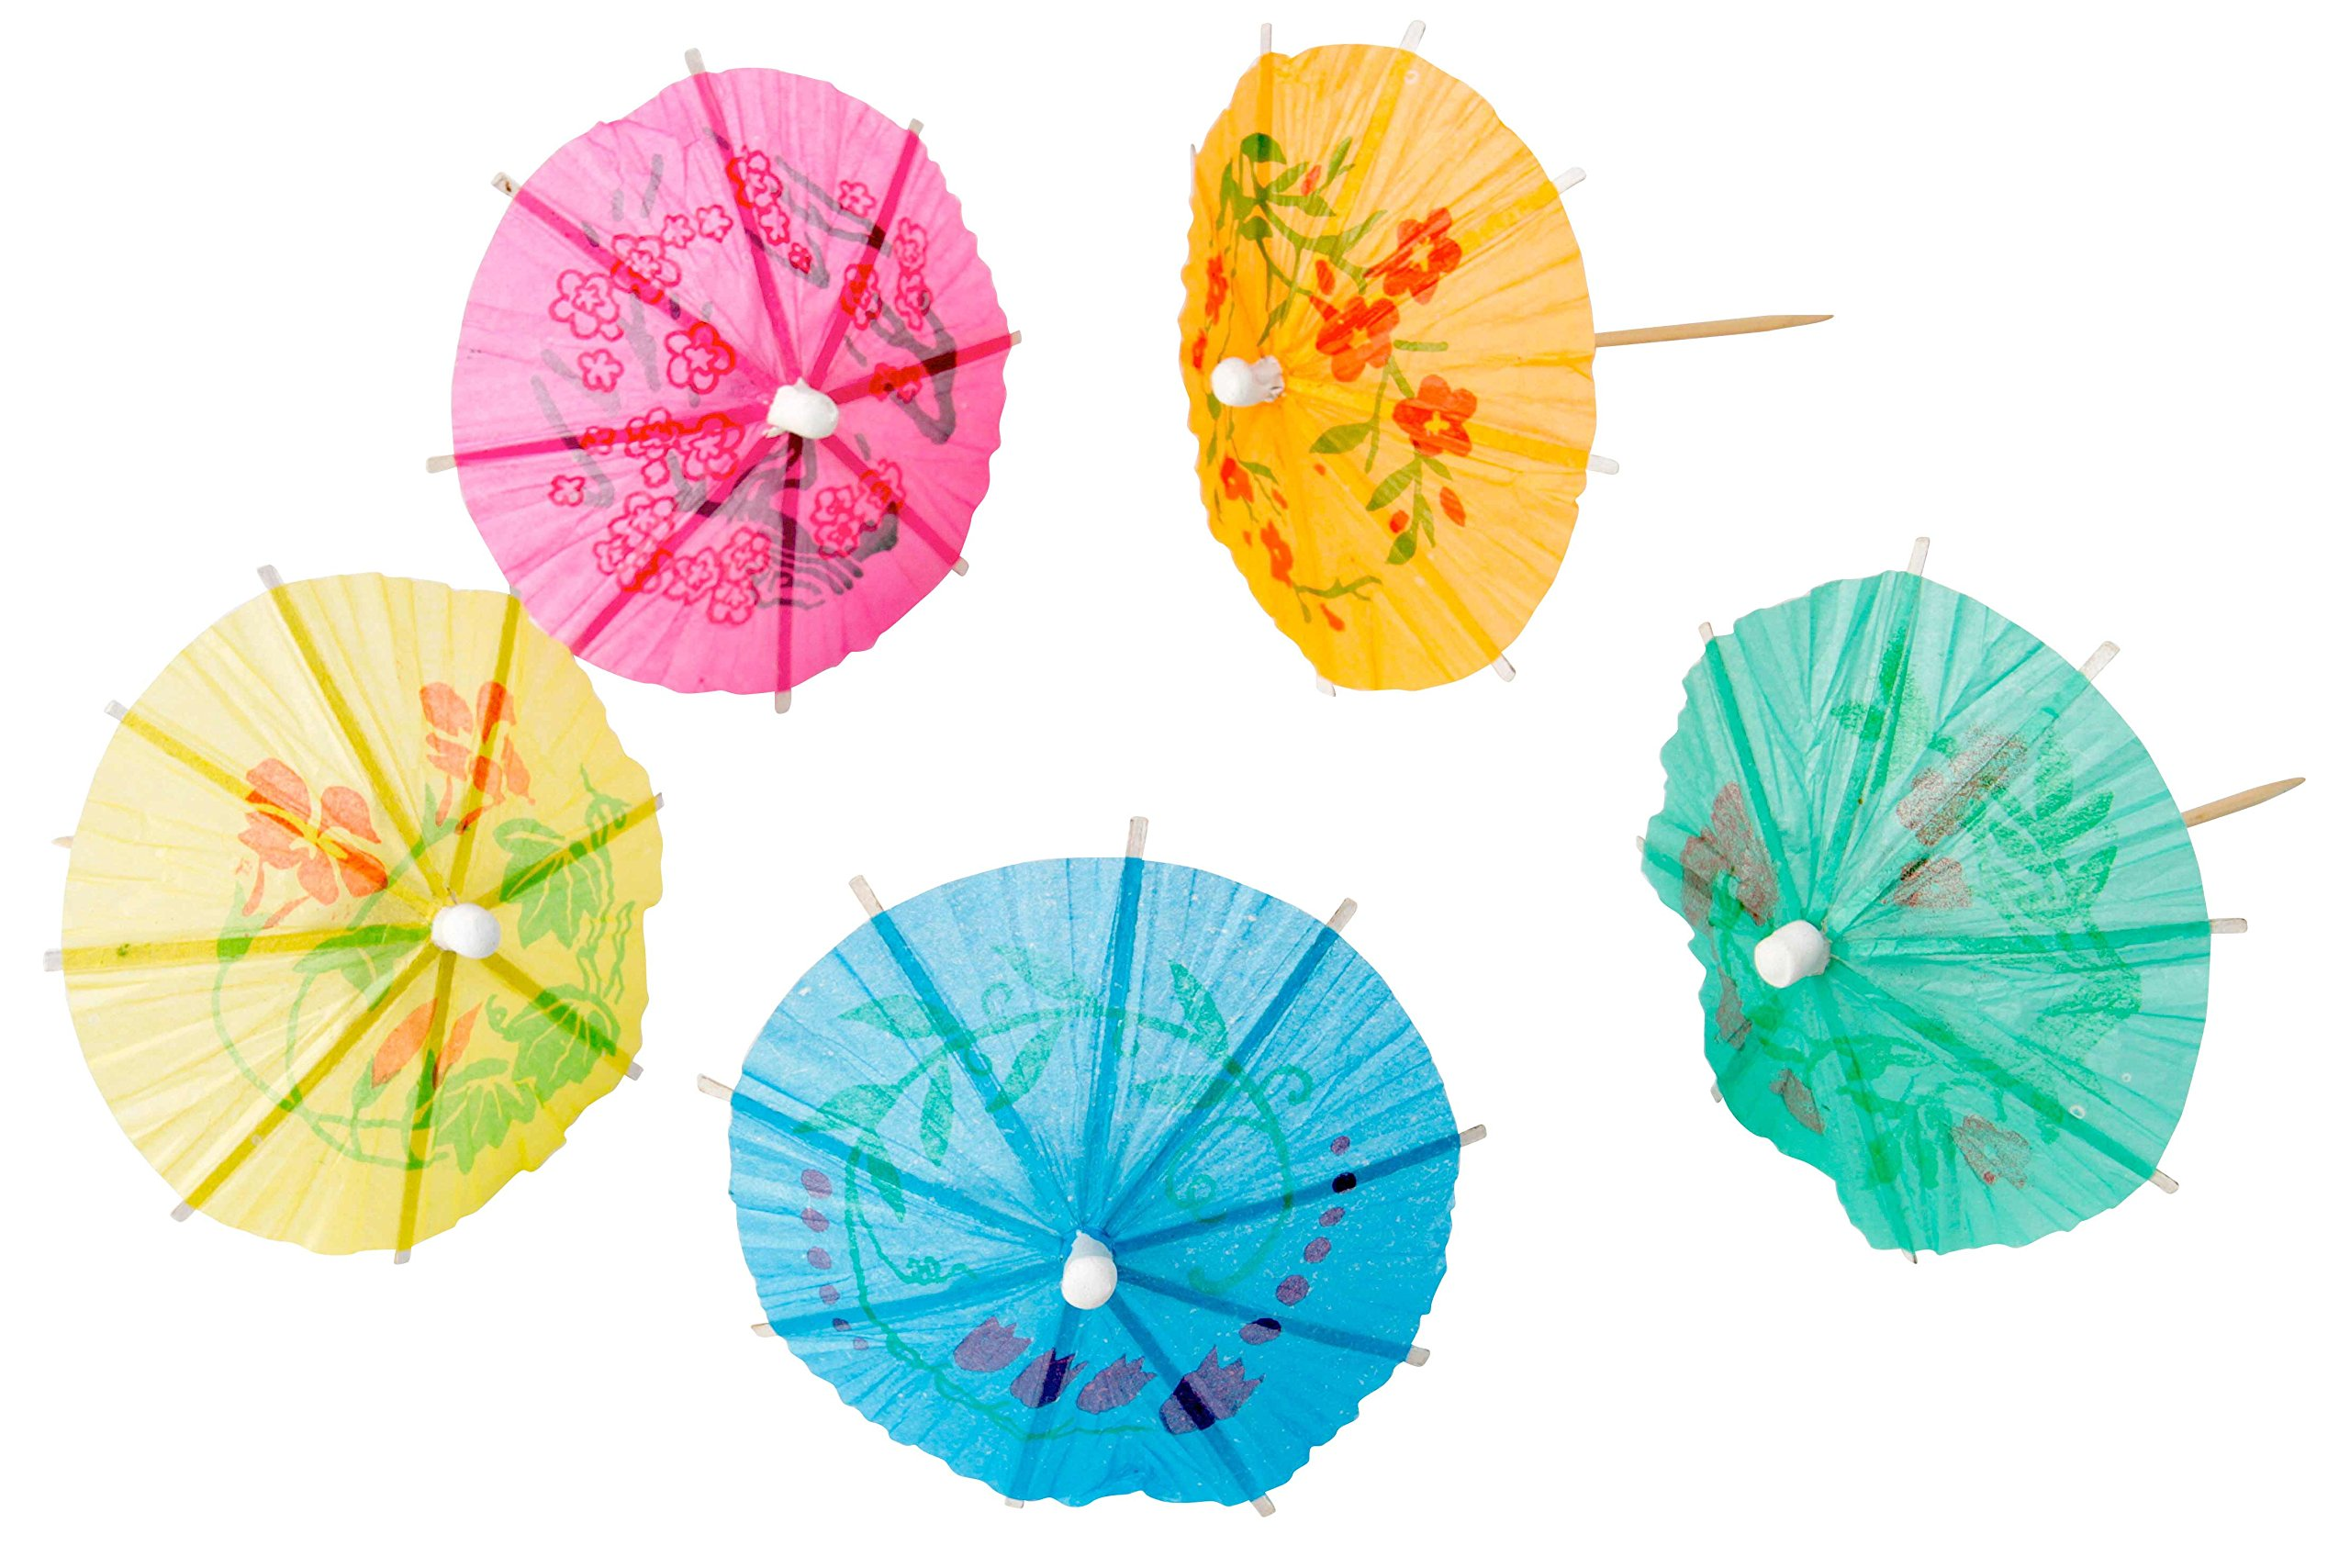 The Bar 45-Count Vibrantly-Colored Decorative Party Parasol with Attached Wooden Pick, 3-pack (150 Parasols Total)